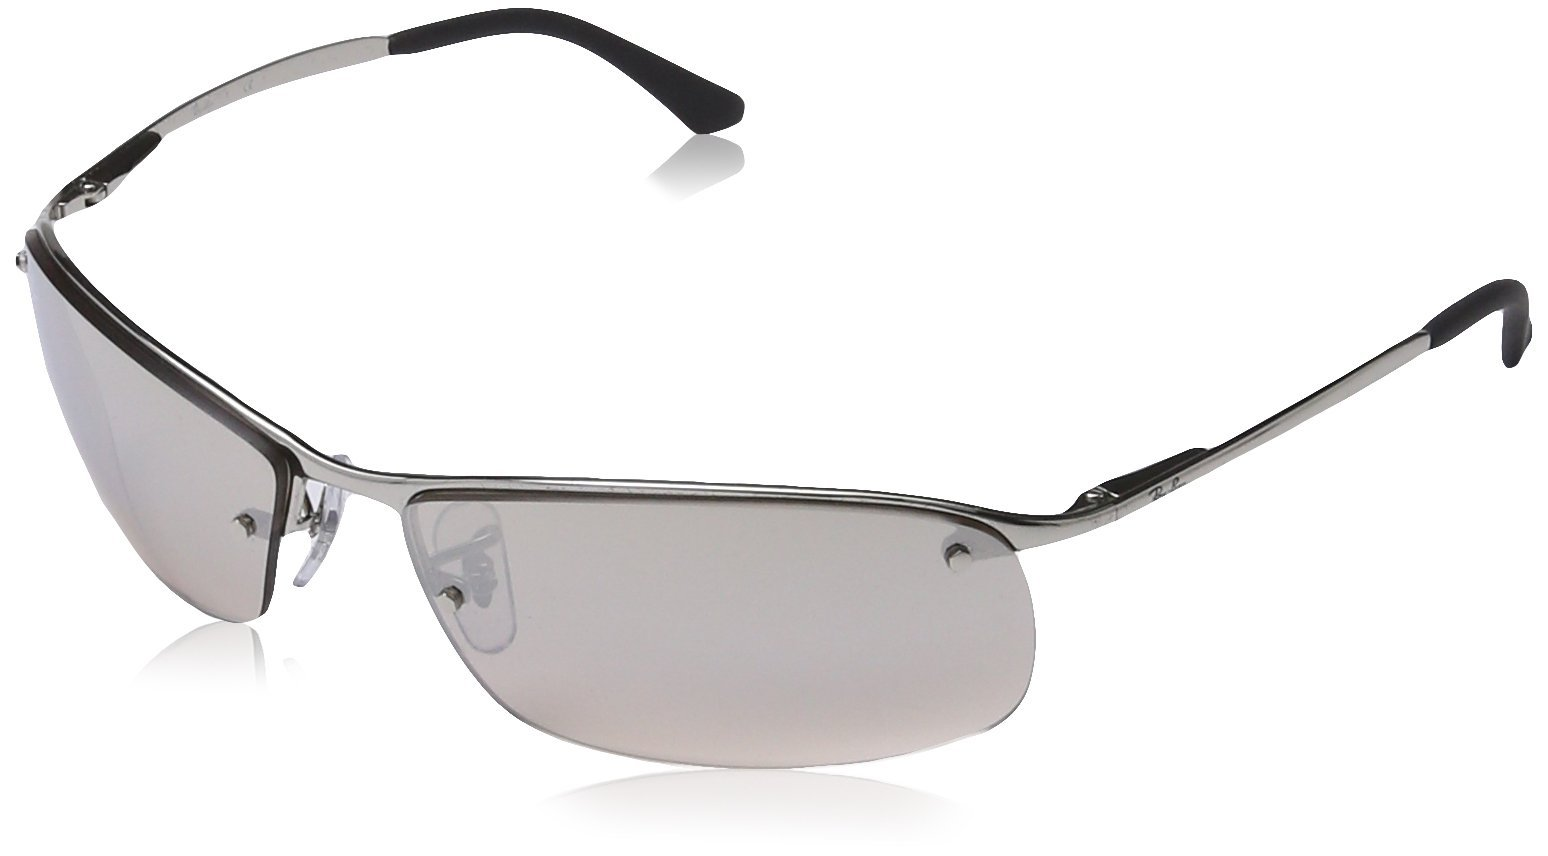 ccb447ceafe08 Ray-Ban Mens Sunglasses (RB3183) Silver Grey and 50 similar items